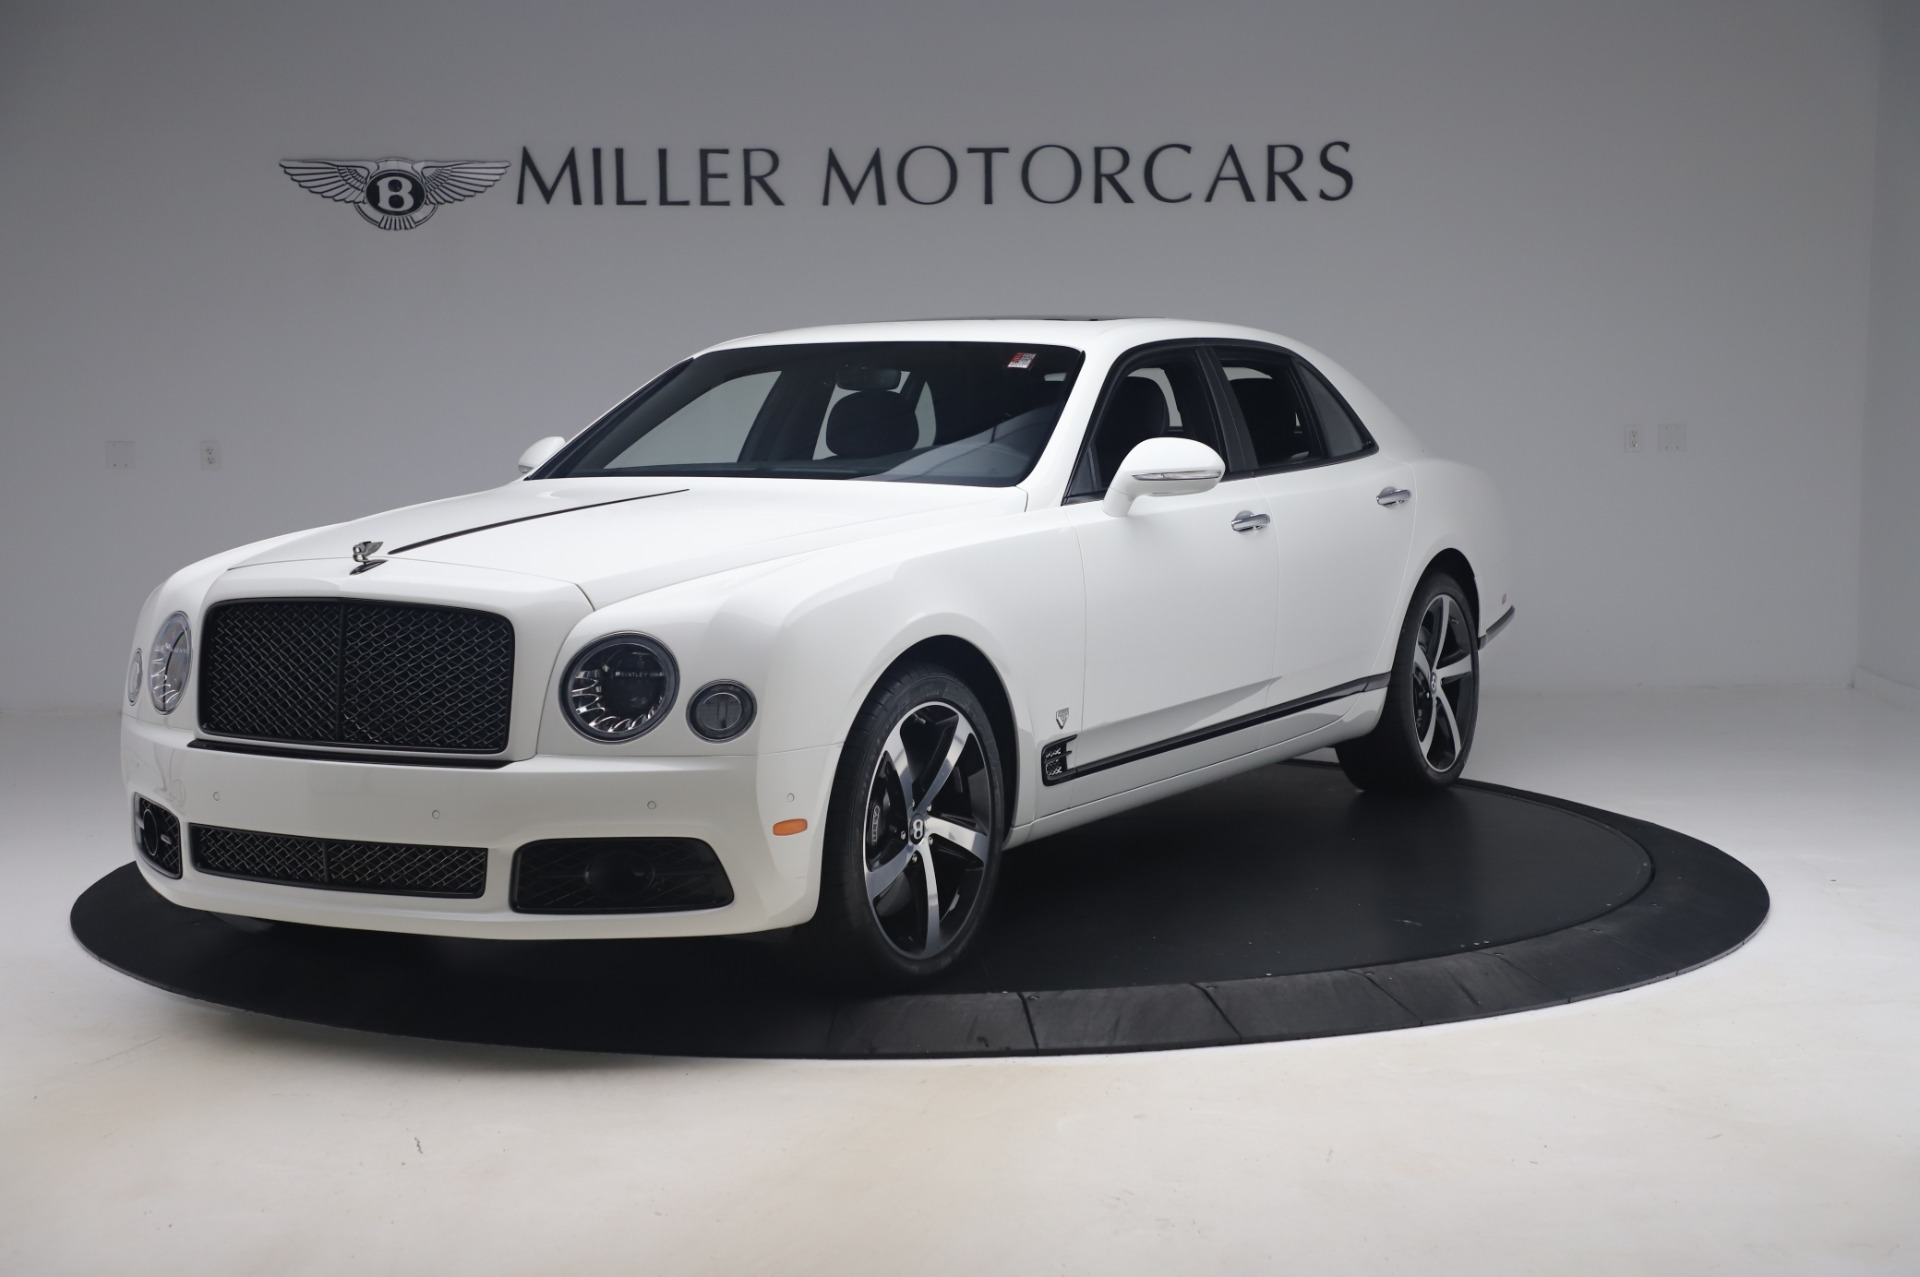 New 2020 Bentley Mulsanne 6.75 Edition by Mulliner for sale $363,840 at Maserati of Greenwich in Greenwich CT 06830 1